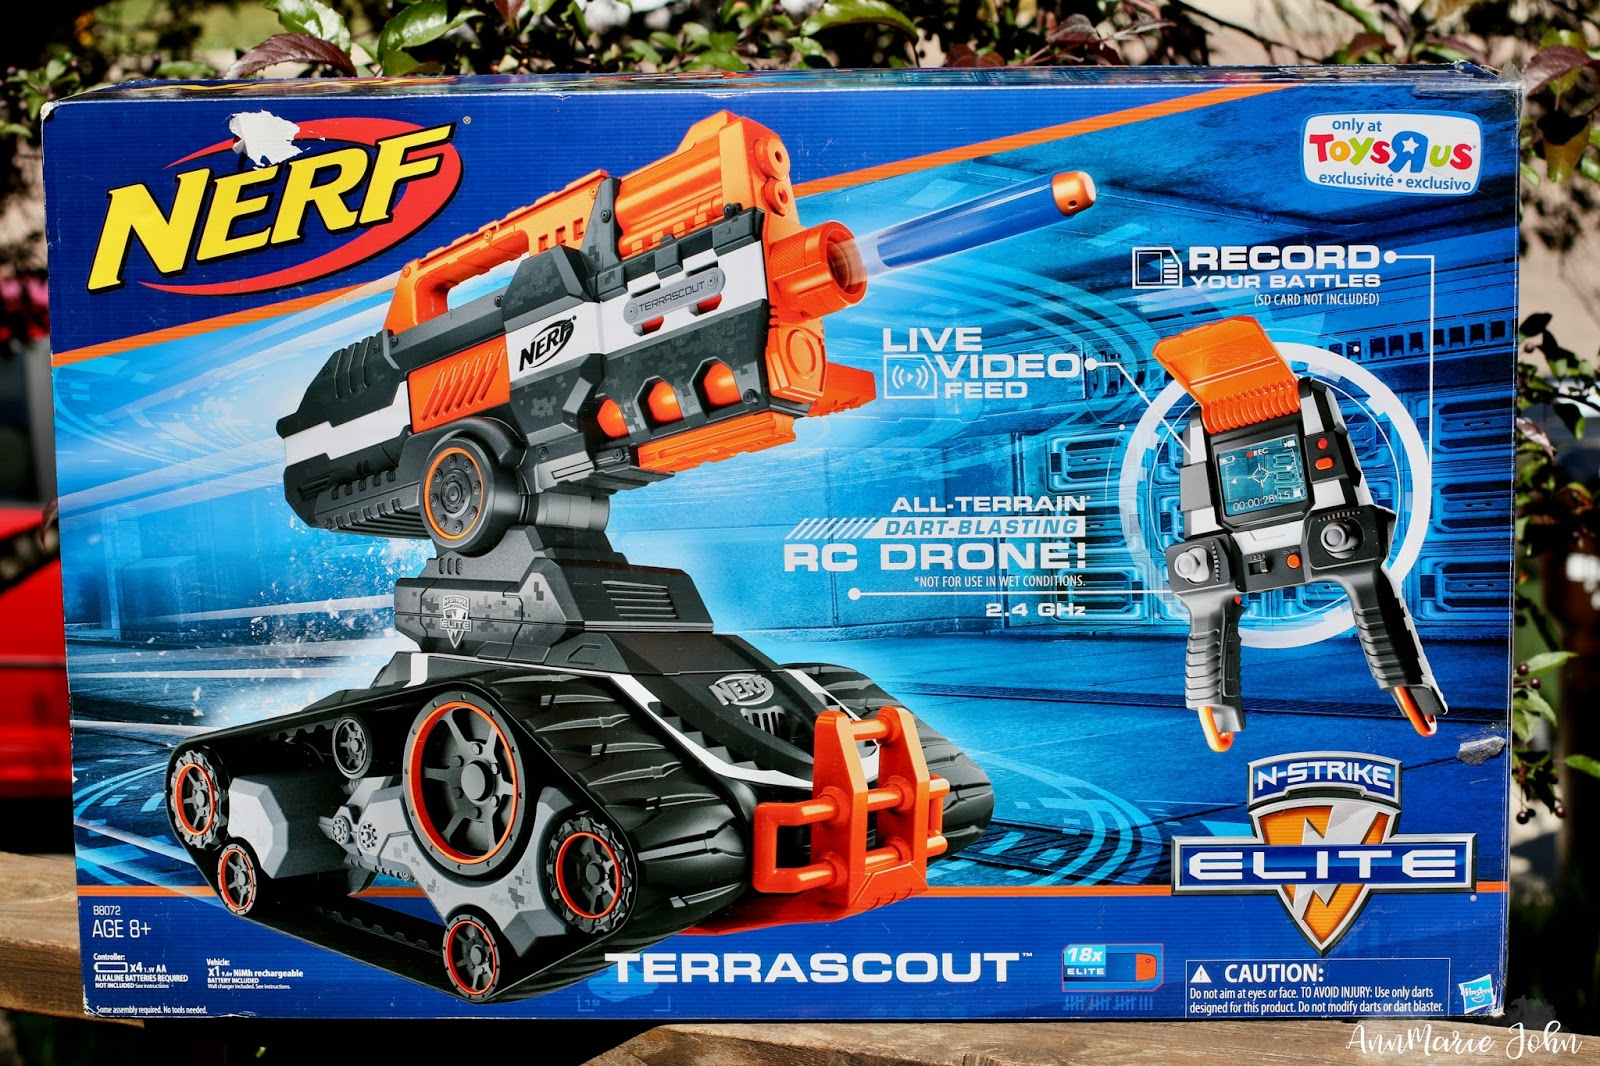 Looking for some summer fun in the sun? Get your kids away from the screen & outside with NERF blasters! They're fun for both kids & parents! #TRUPowerUpFun